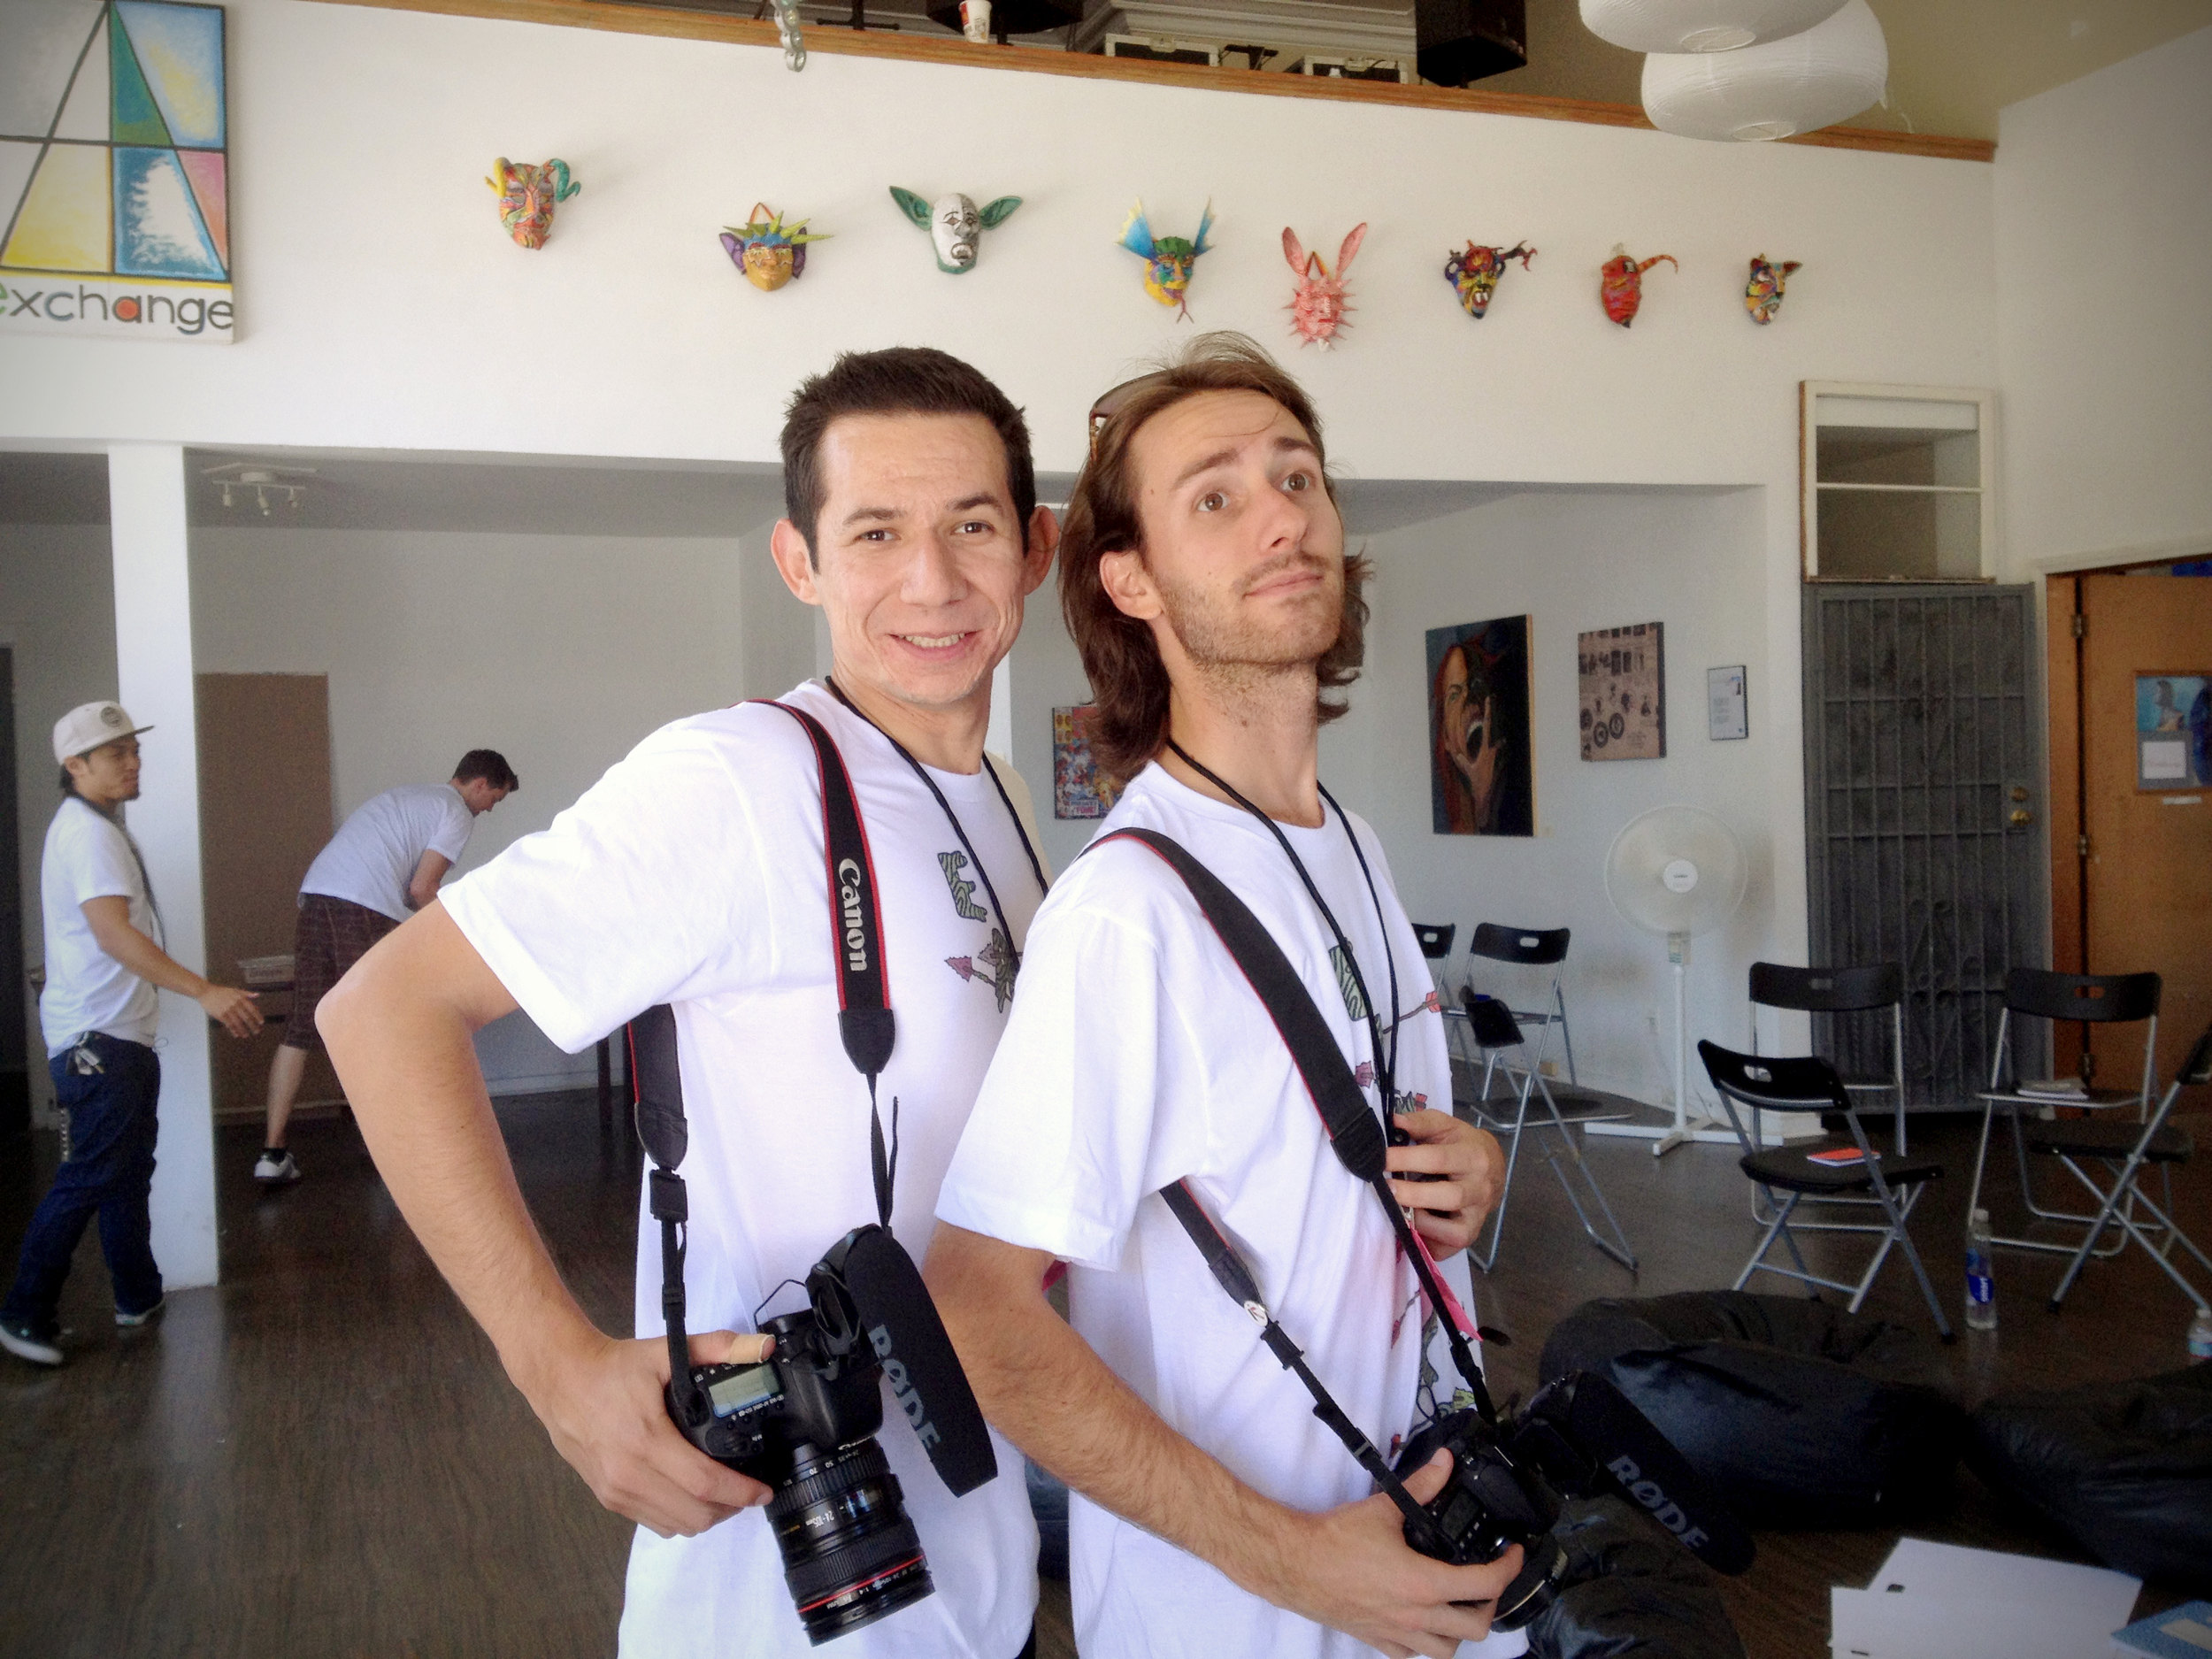 our awesome documentarians, alex and mark, capturing all the moments!